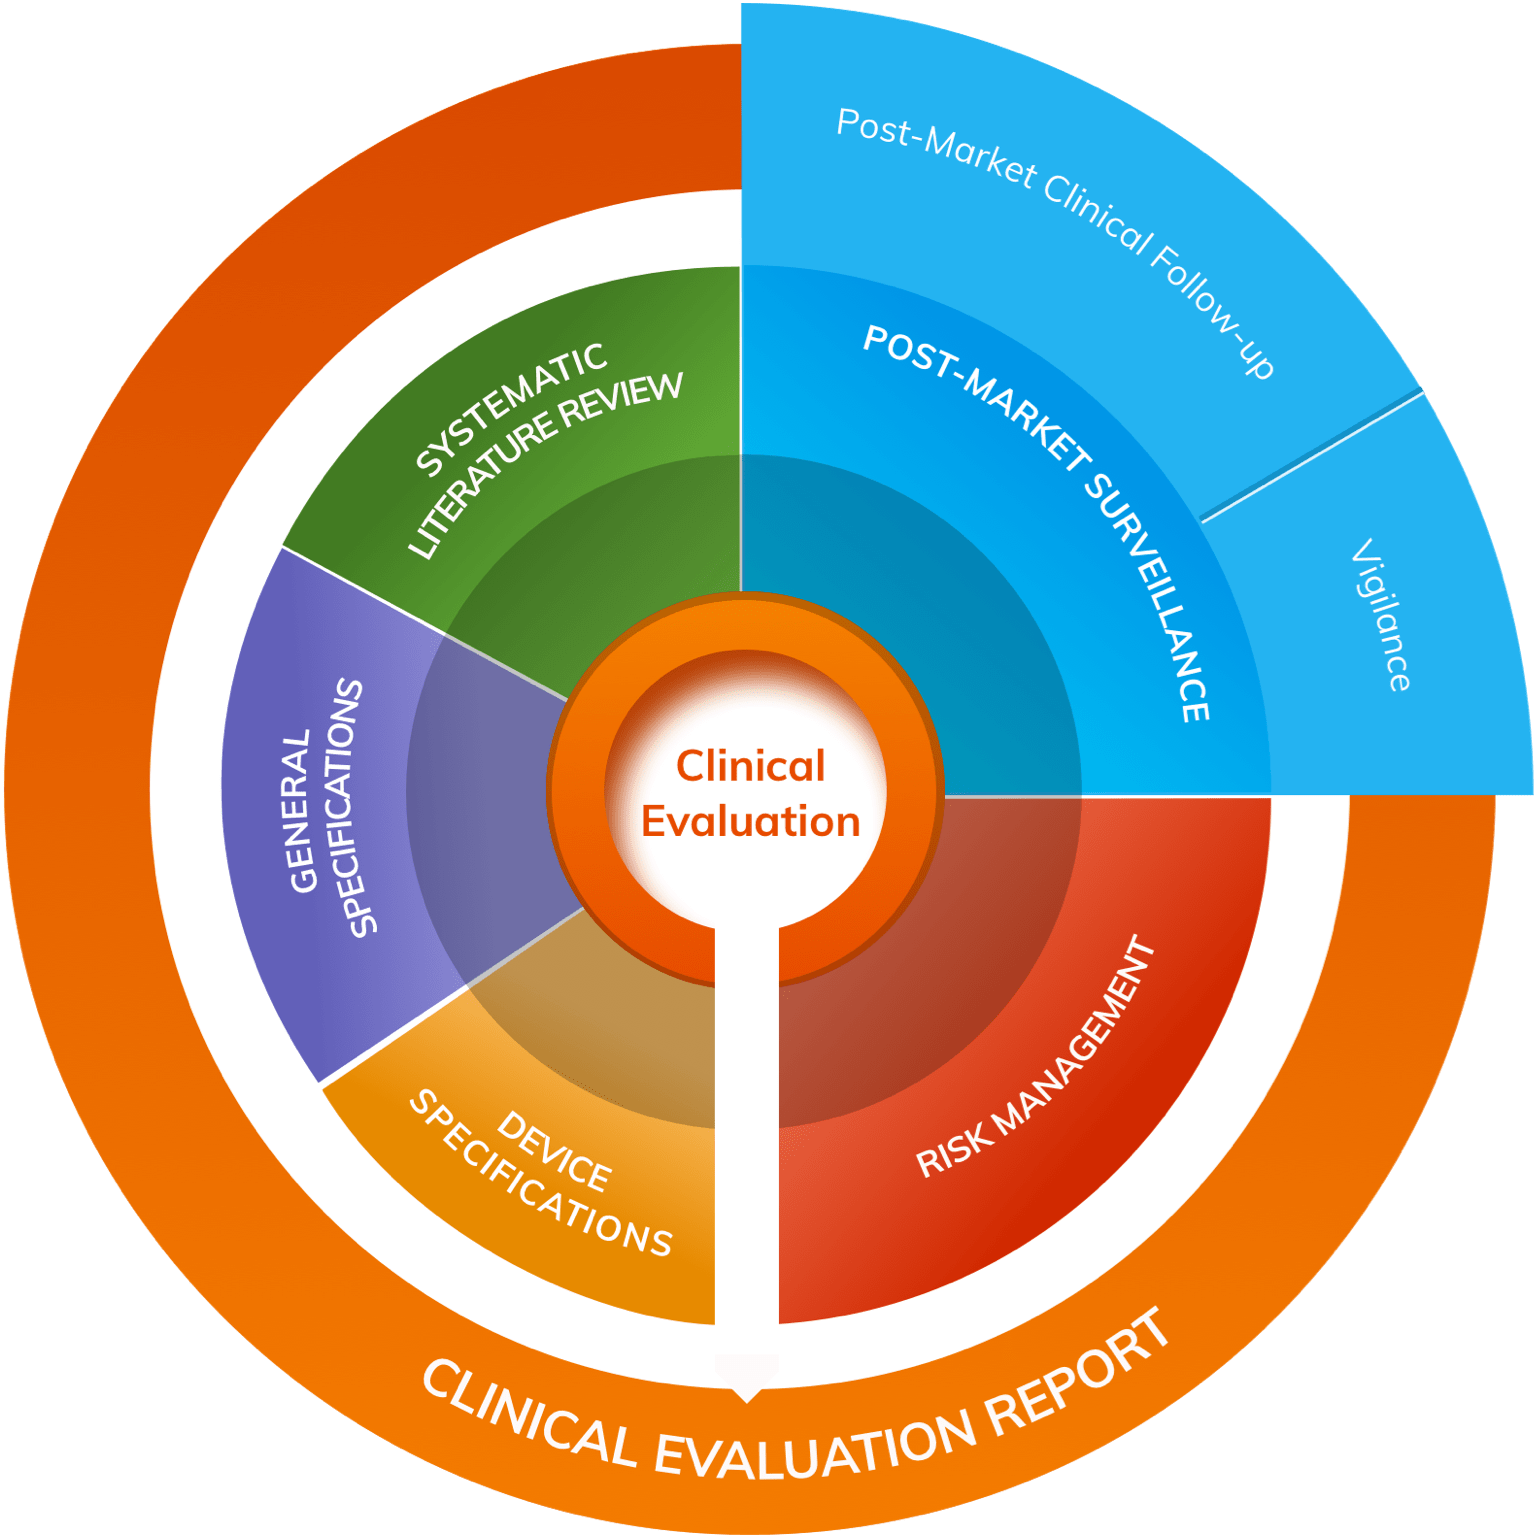 Clinical Evaluation draws generated data from general/device specifications, Systematic Literature Reviews, Post-Market Surveillance, Post-Market Clinical Follow-up, Vigilance and Risk Management, which are used in the Clinical Evaluation Report